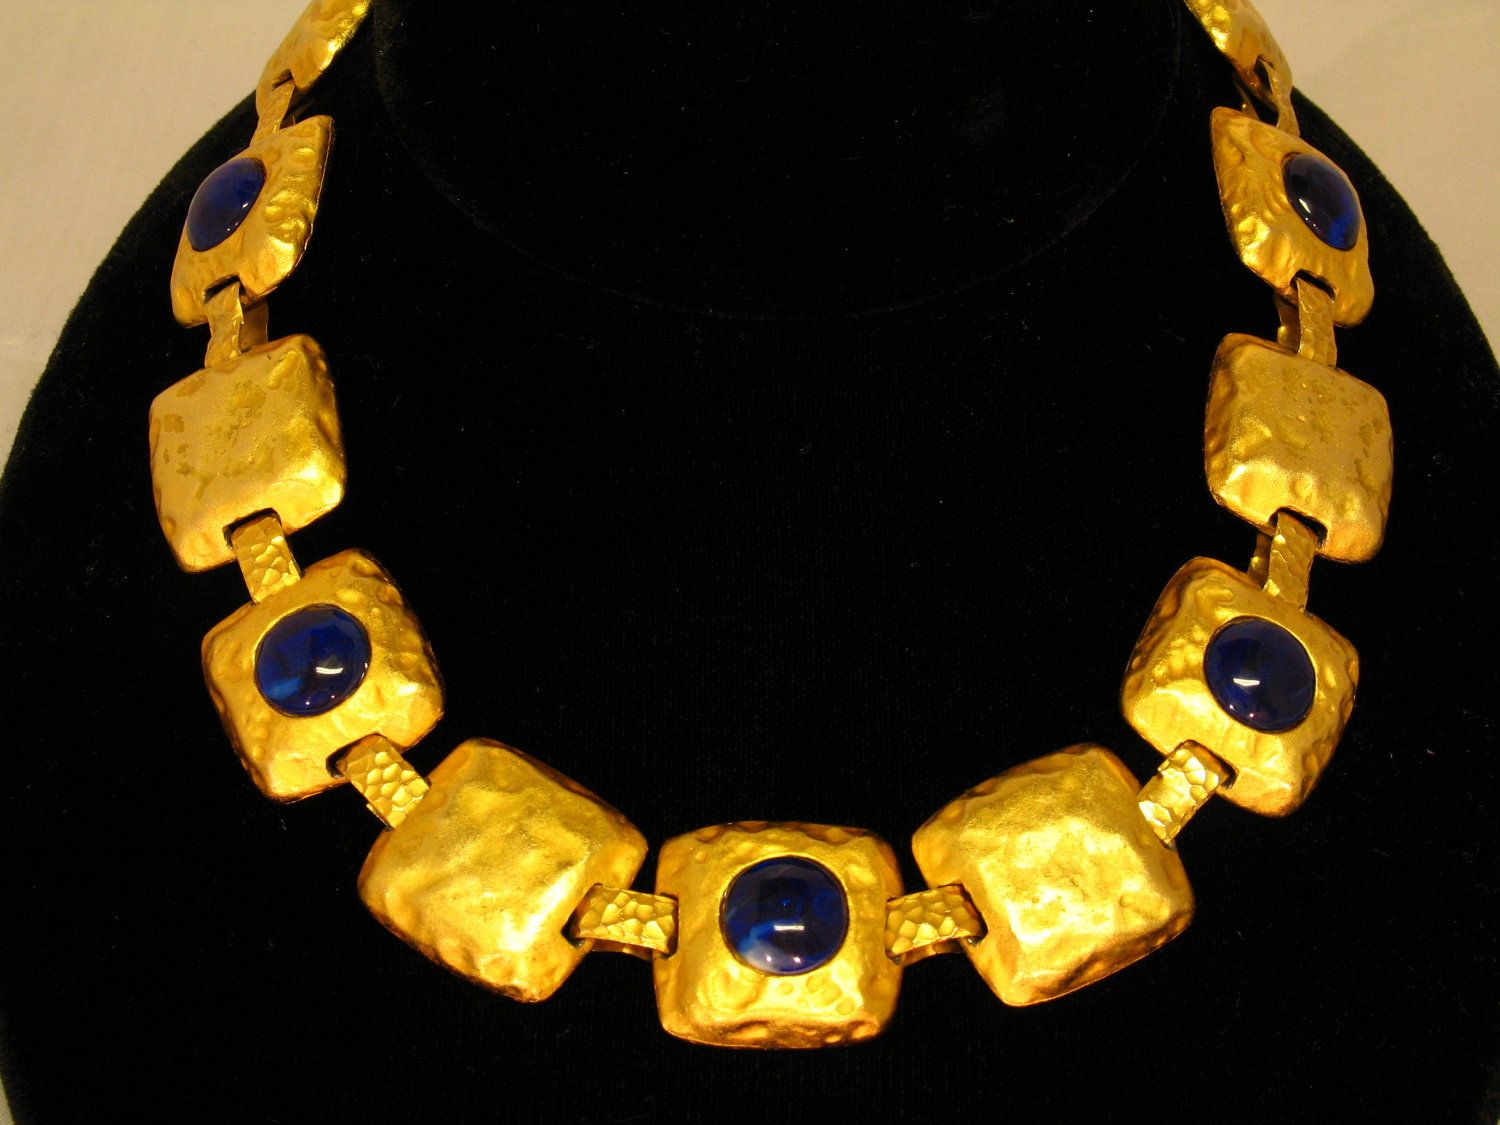 Les Bernard Necklace Choker Gold Tone Rustic, Hammered Look w Emerald Blue Cabachons Ca. 1970s WAS 120. $ 95.00, via Etsy.